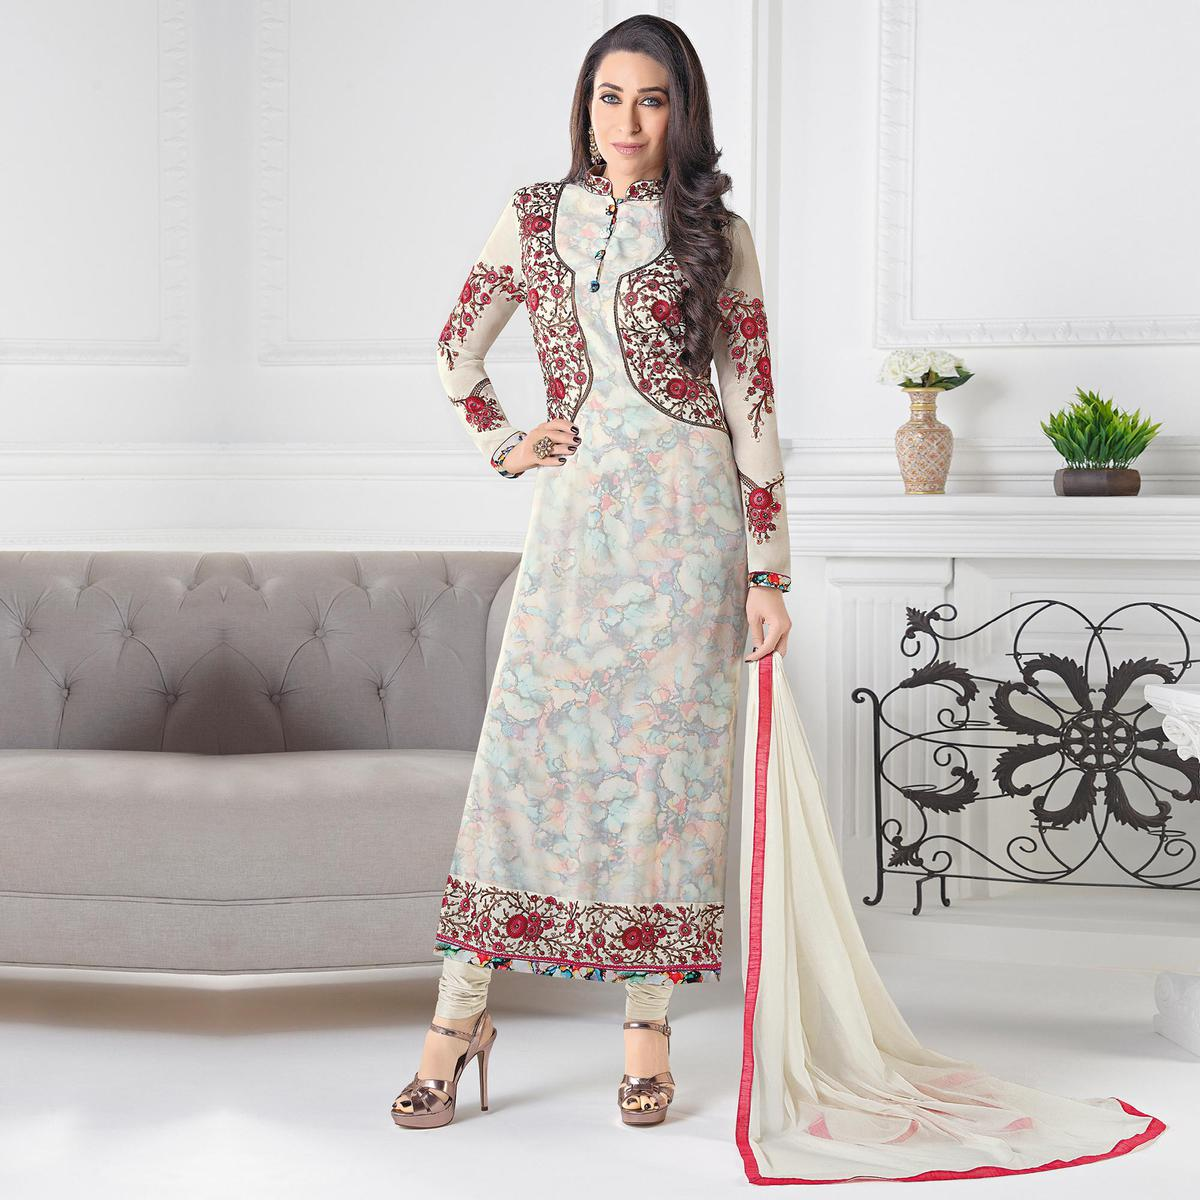 f7054f6e1fa621 Buy Stylish Off-White Designer Embroidered Faux Georgette Salwar Suit for  womens online India, Best Prices, Reviews - Peachmode